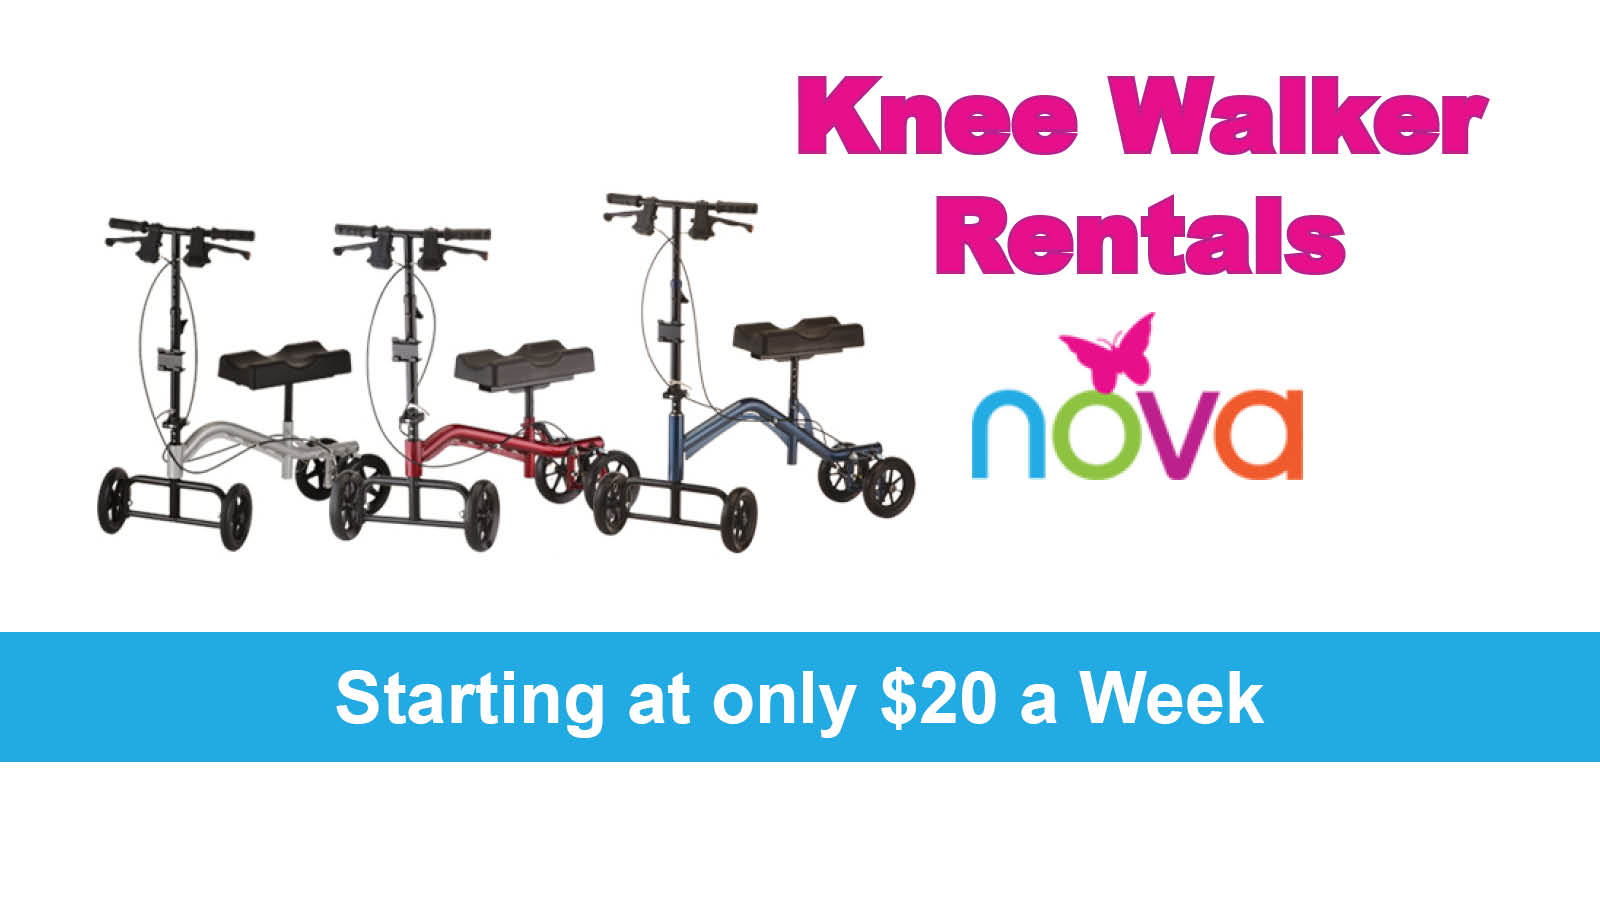 knee scooter rentals or knee walker rentals with the lowest prices in dallas